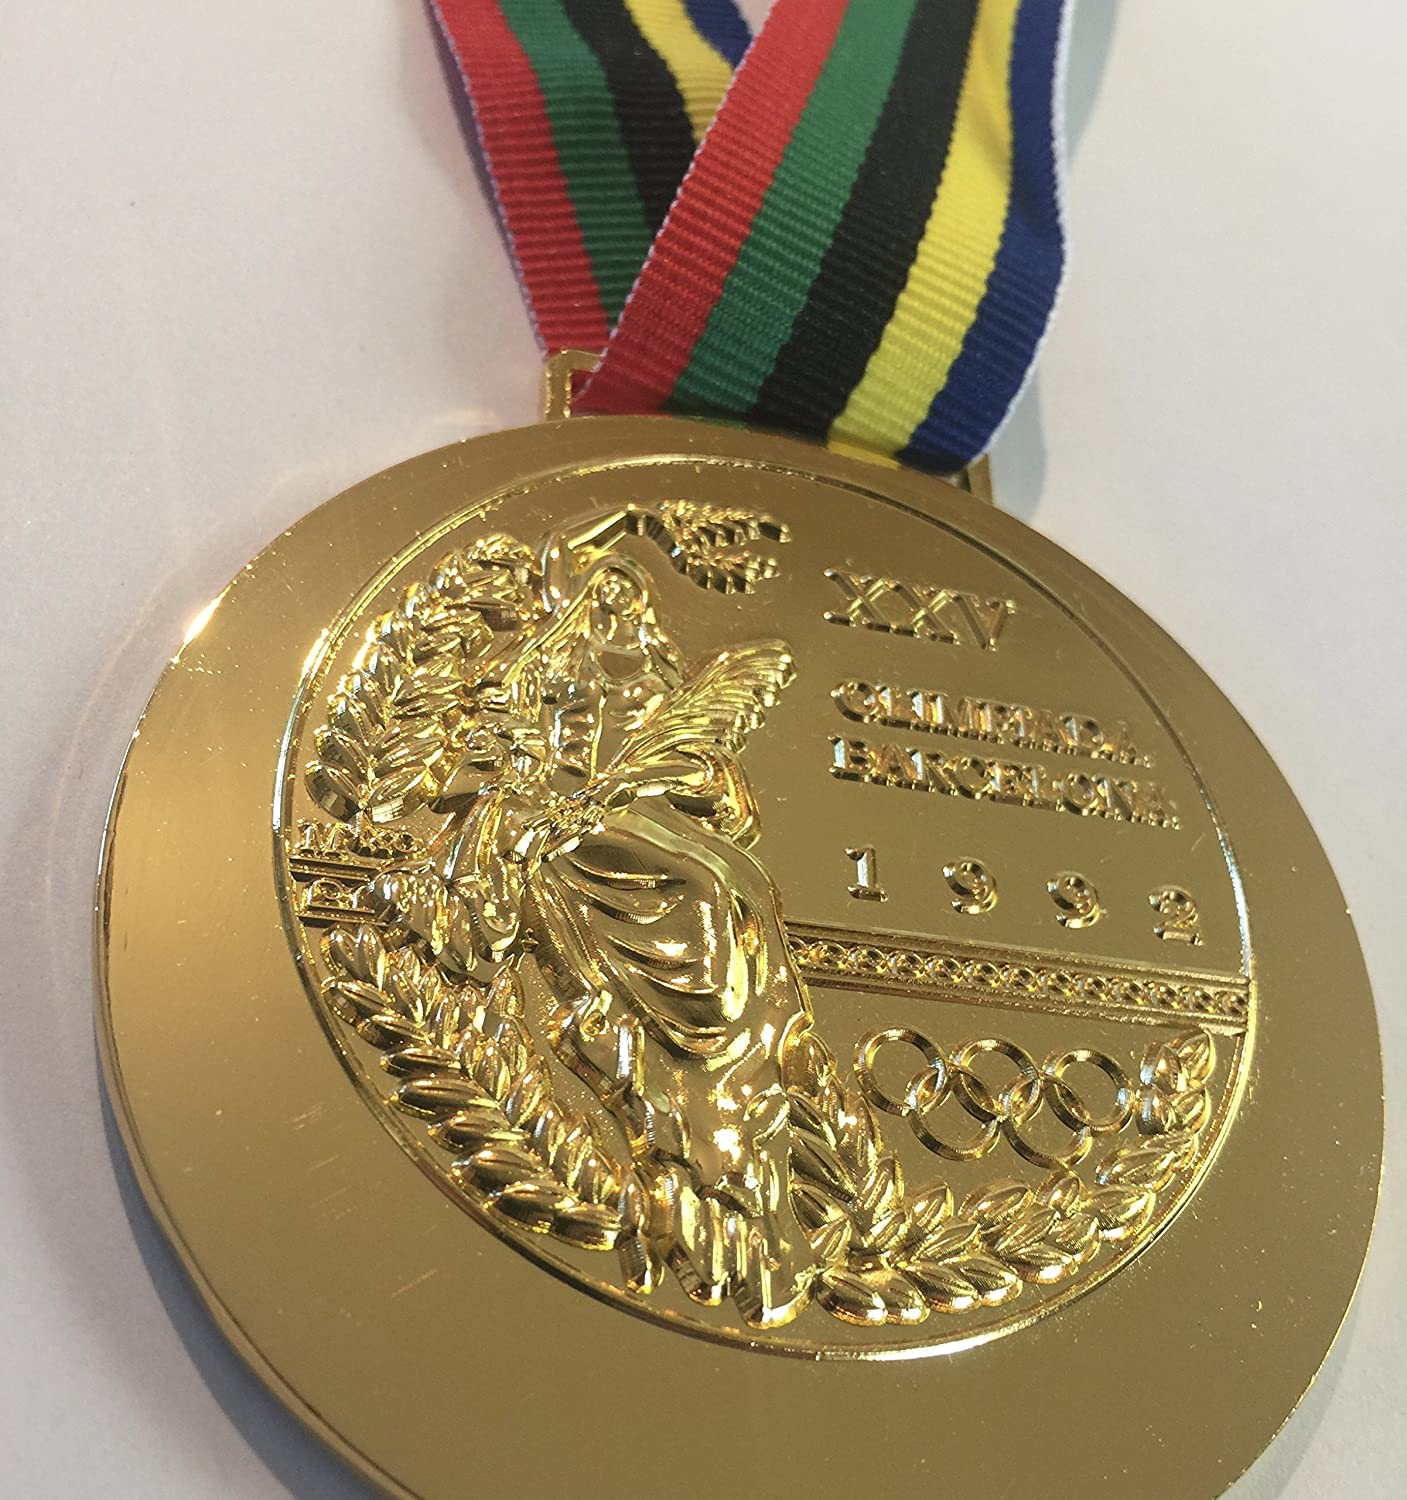 1992 Barcelona SPAIN Olympic Souvenir GOLD Medal with Ribbon RARE TEAM USA Not a Pin or Coin